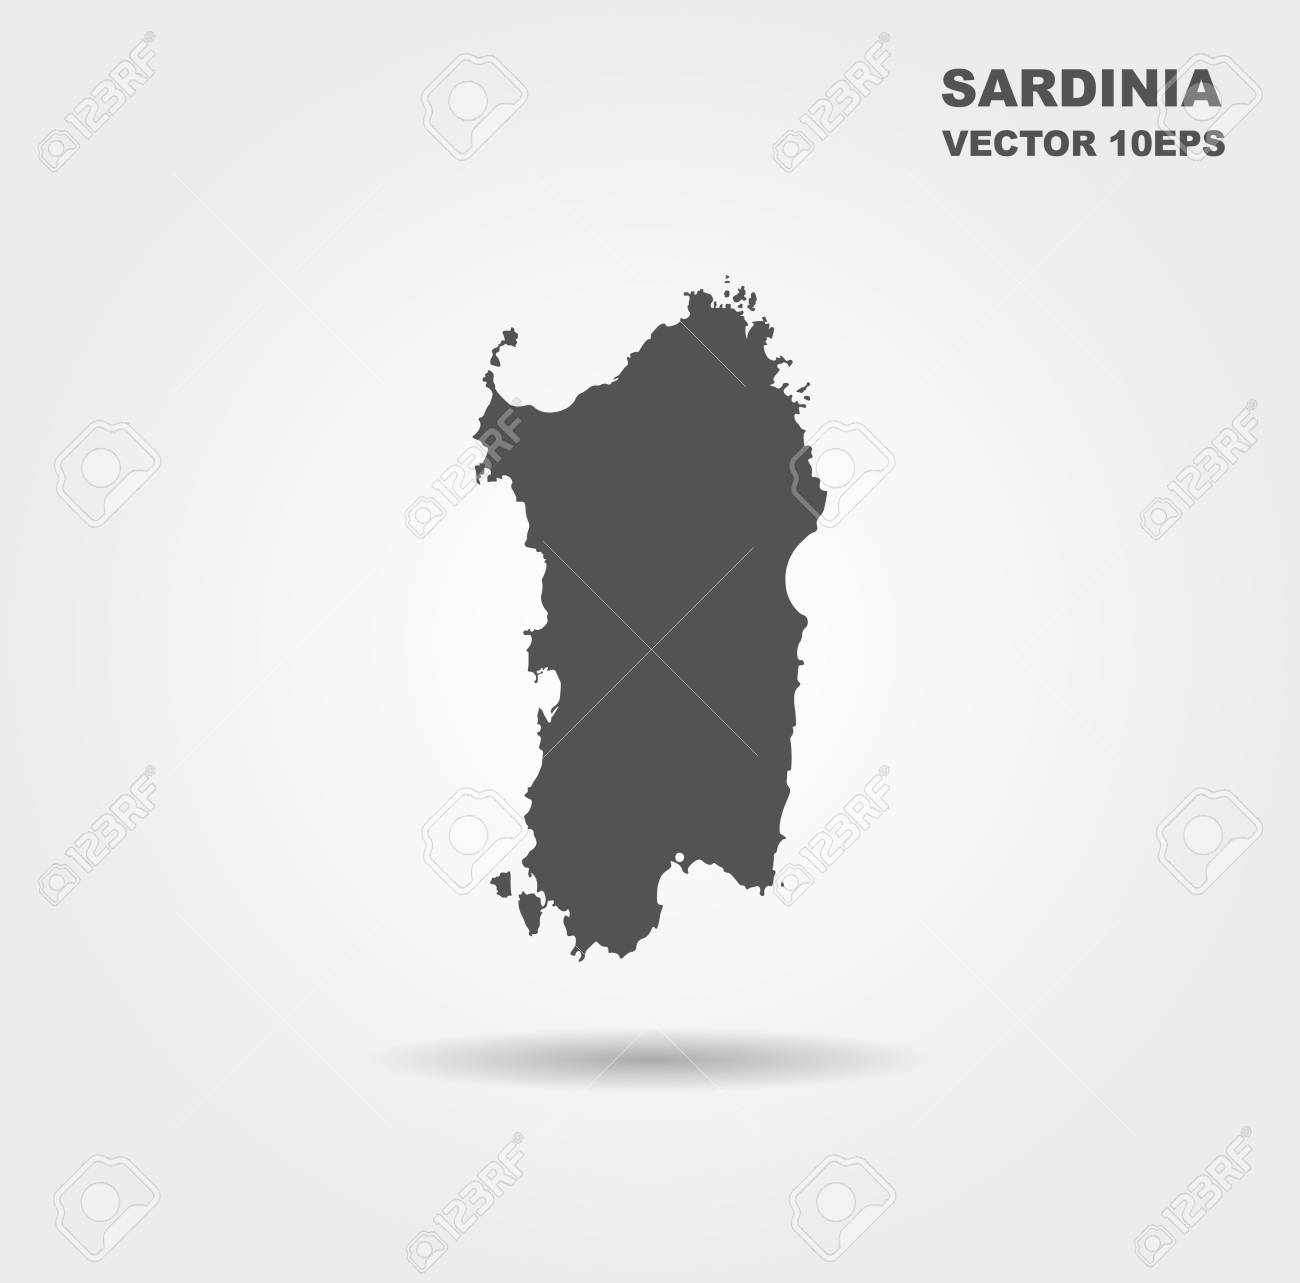 Map Of Sardinia Italy Vector Illustration Royalty Free Cliparts